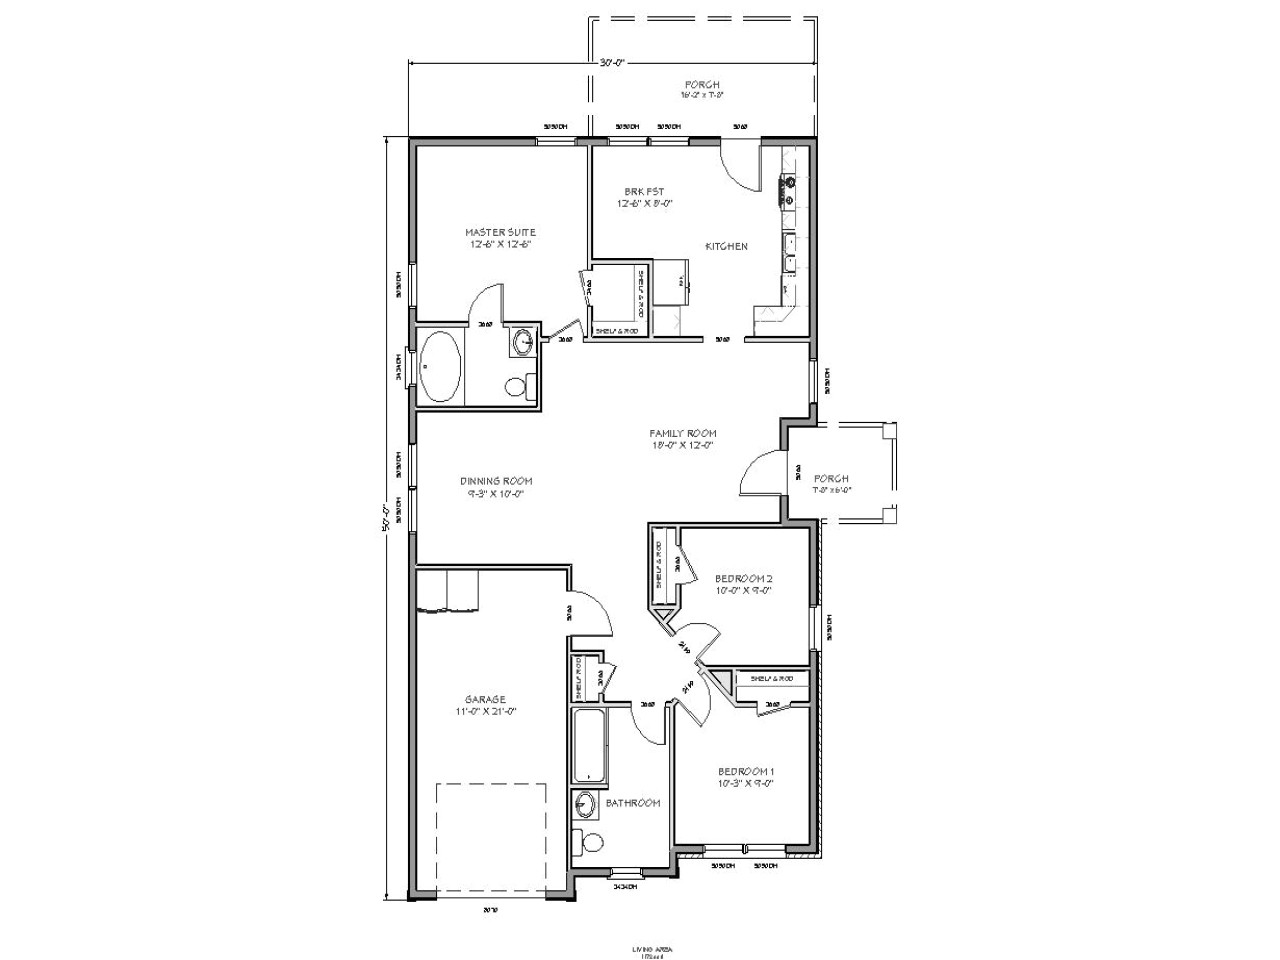 Small Home Plans00 Sq Ft Small Modern House Plans Under 1000 Sq Ft